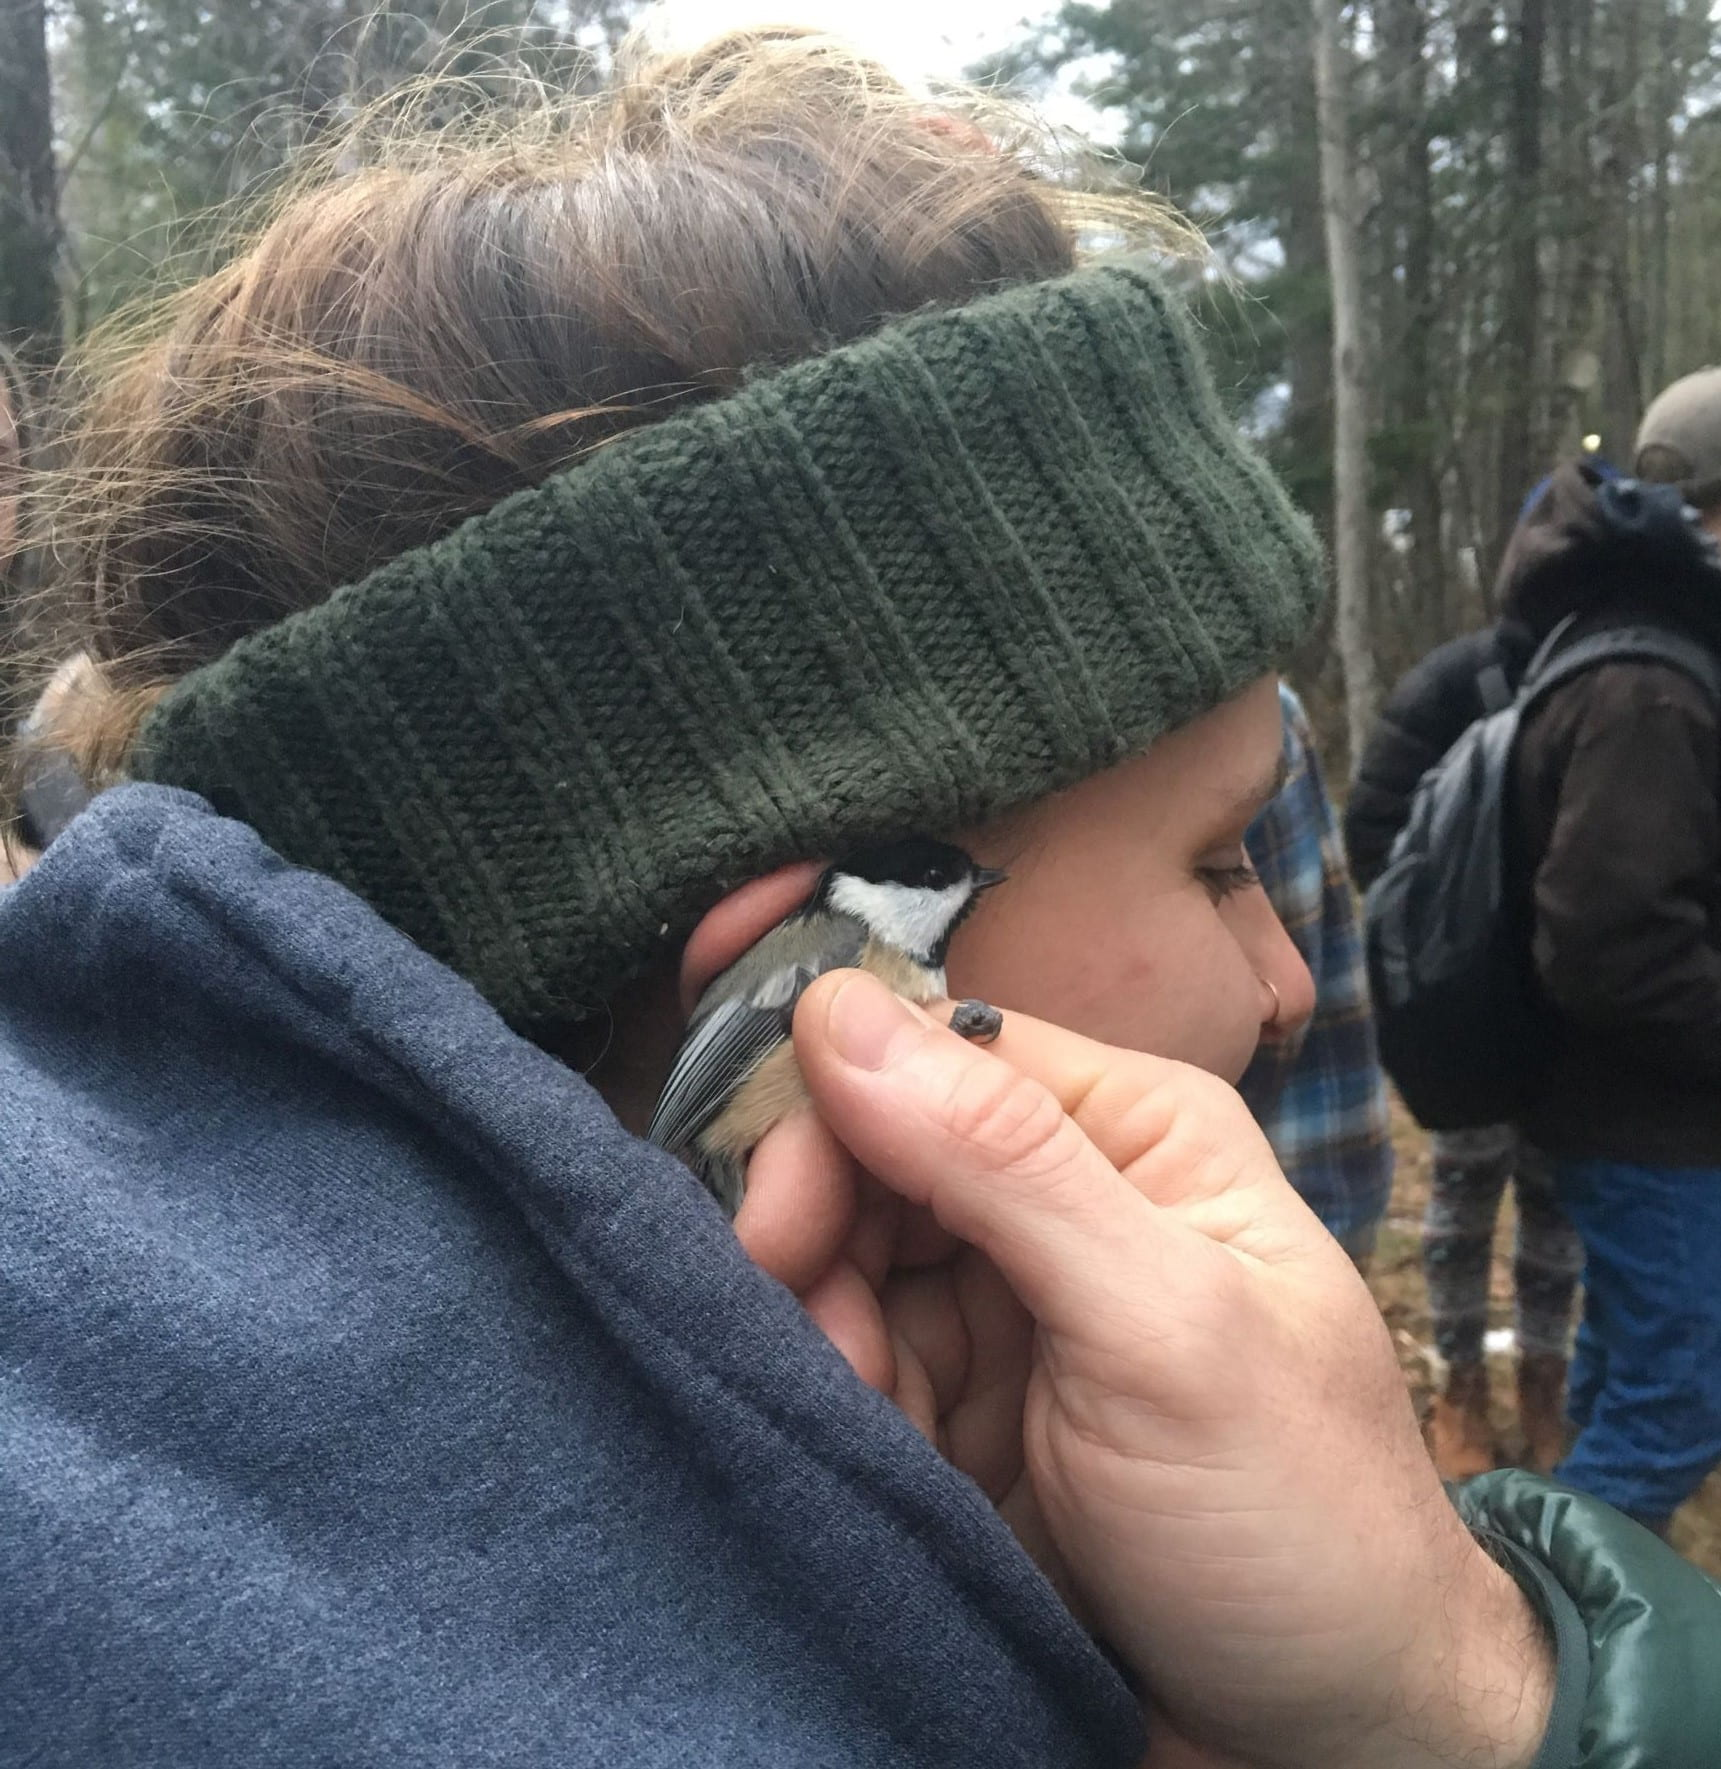 Listening to Black-capped Chickadee heartbeat